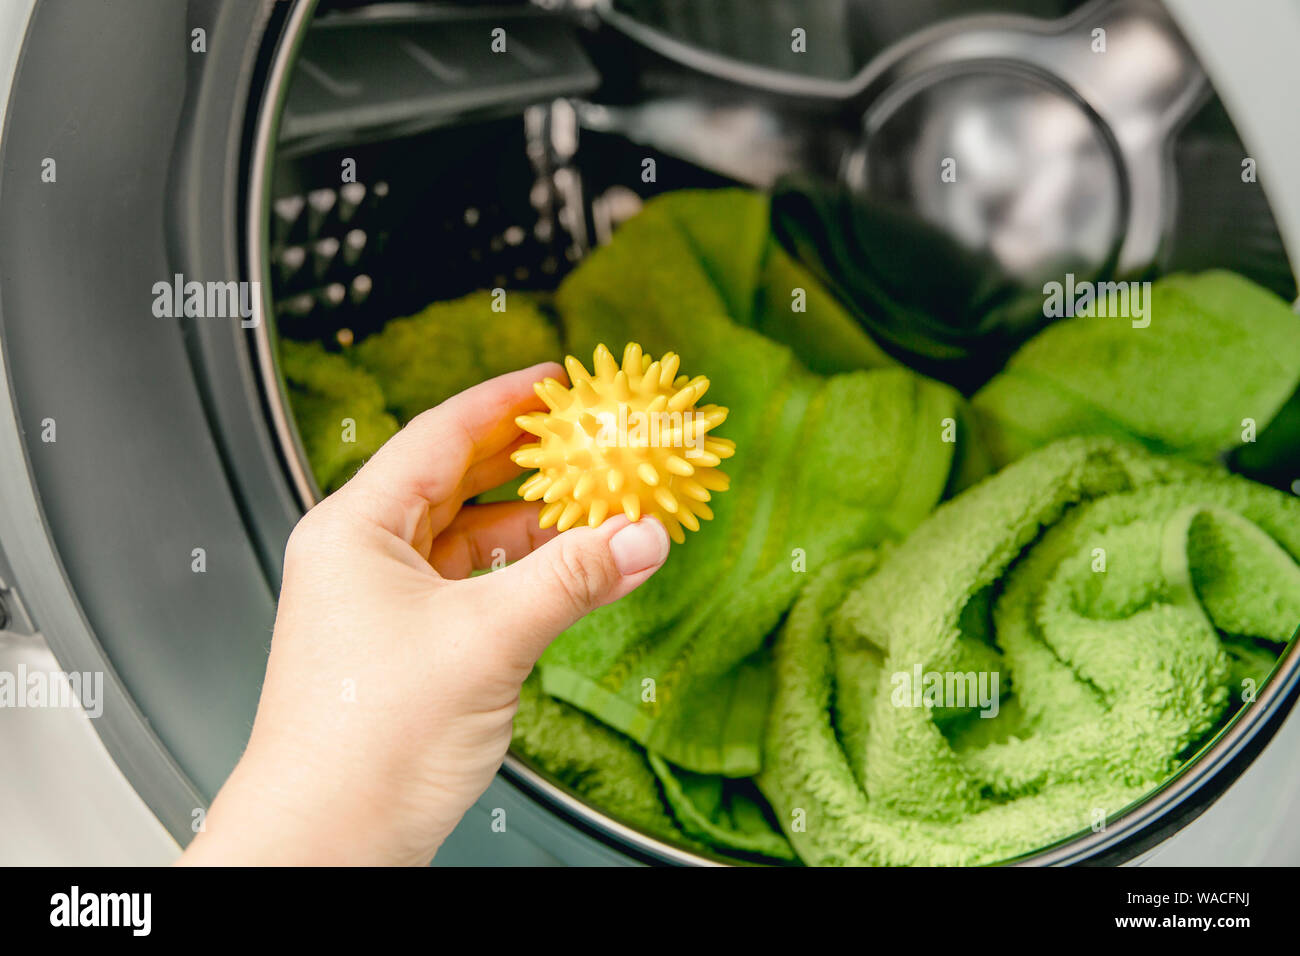 Using pvc dryer balls is natural alternative to both dryer sheets and liquid fabric softener, balls help prevent laundry from clumping in the dryer. Stock Photo